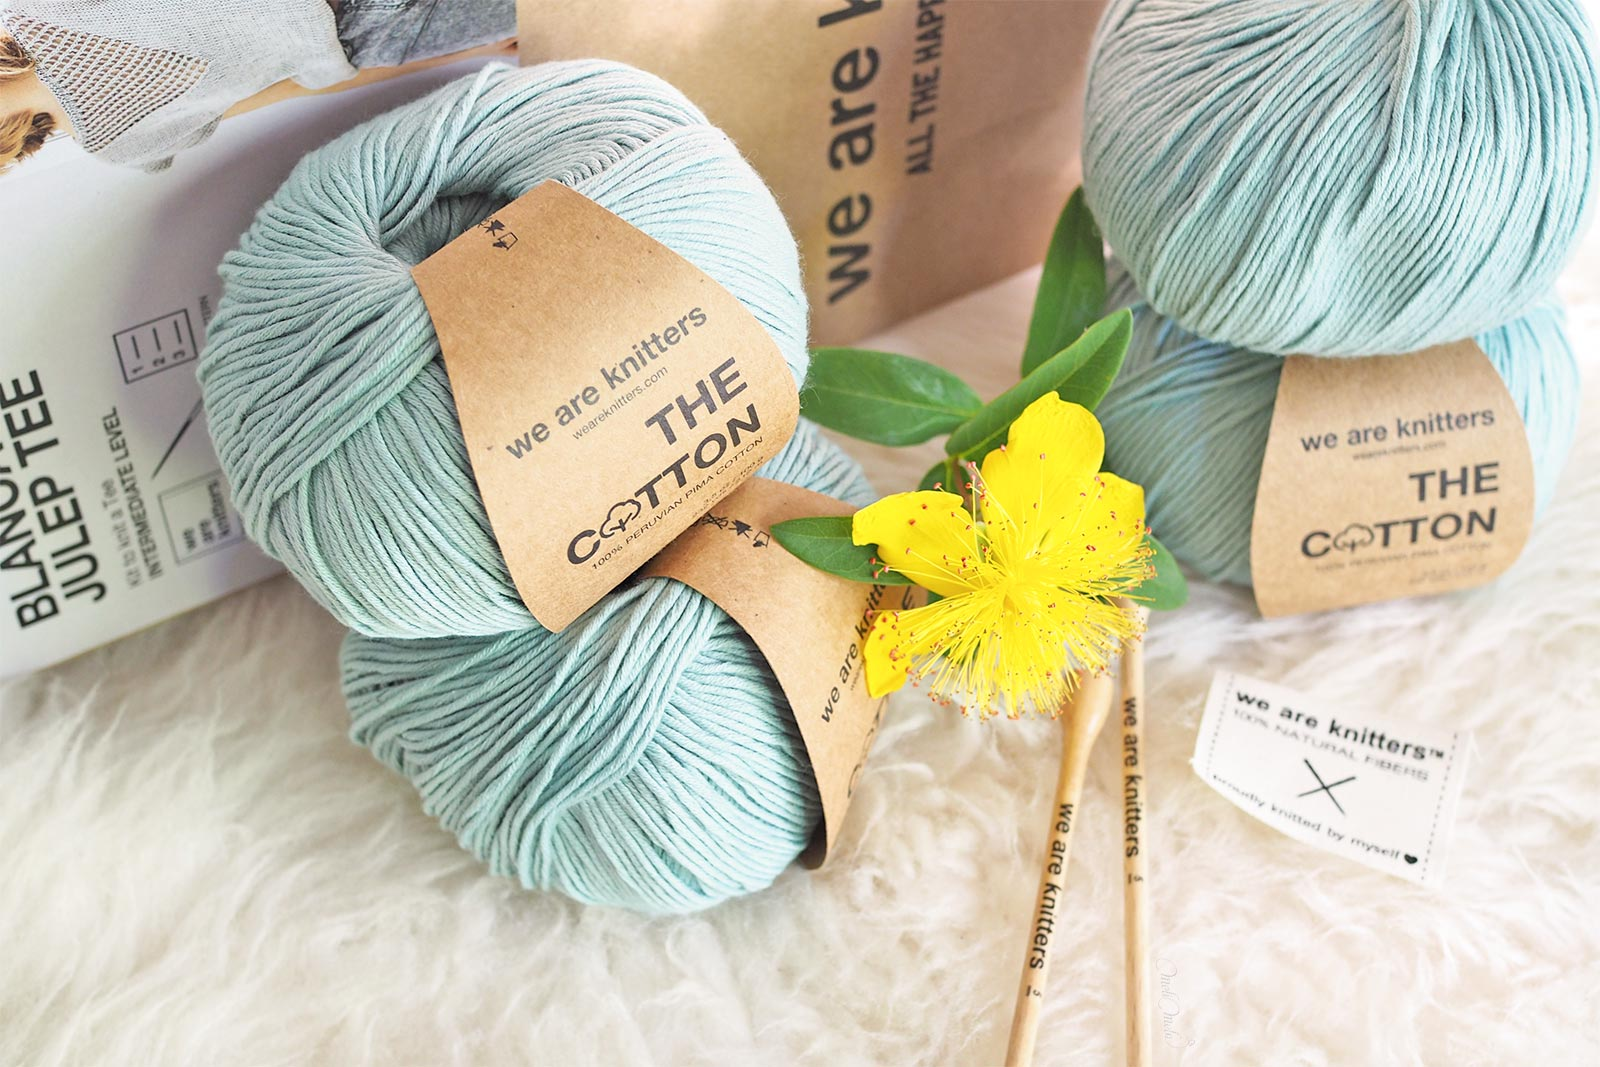 kit tricot knit cotton Pima blanca Julep Tee We Are Knitters